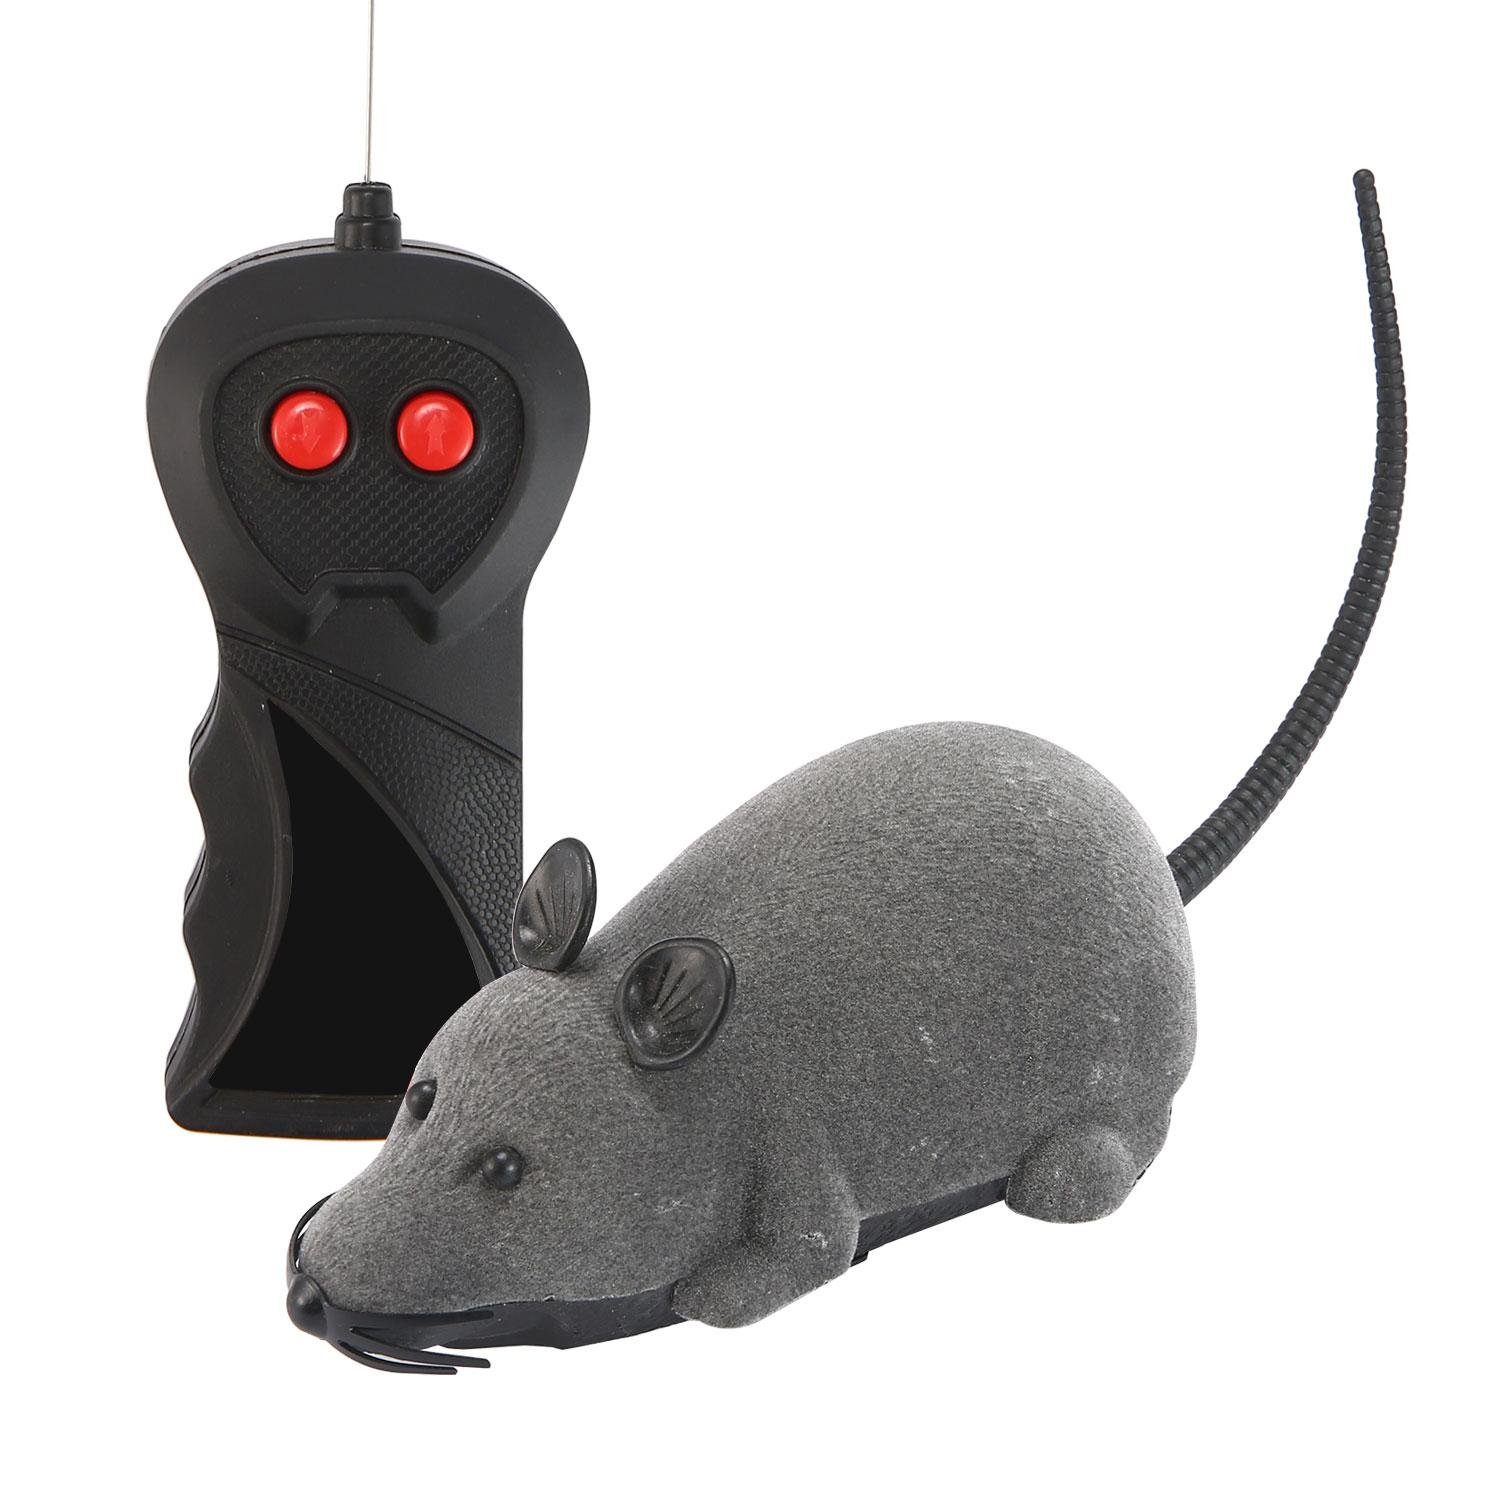 Aolvo Electric Wireless Remote Control Rat Fake Mouse Mice RC Toy Prank Joke Scary Trick Bugs for Party and for Cat Dogs Puppy Pets Kids Novelty Gift Funny Toy